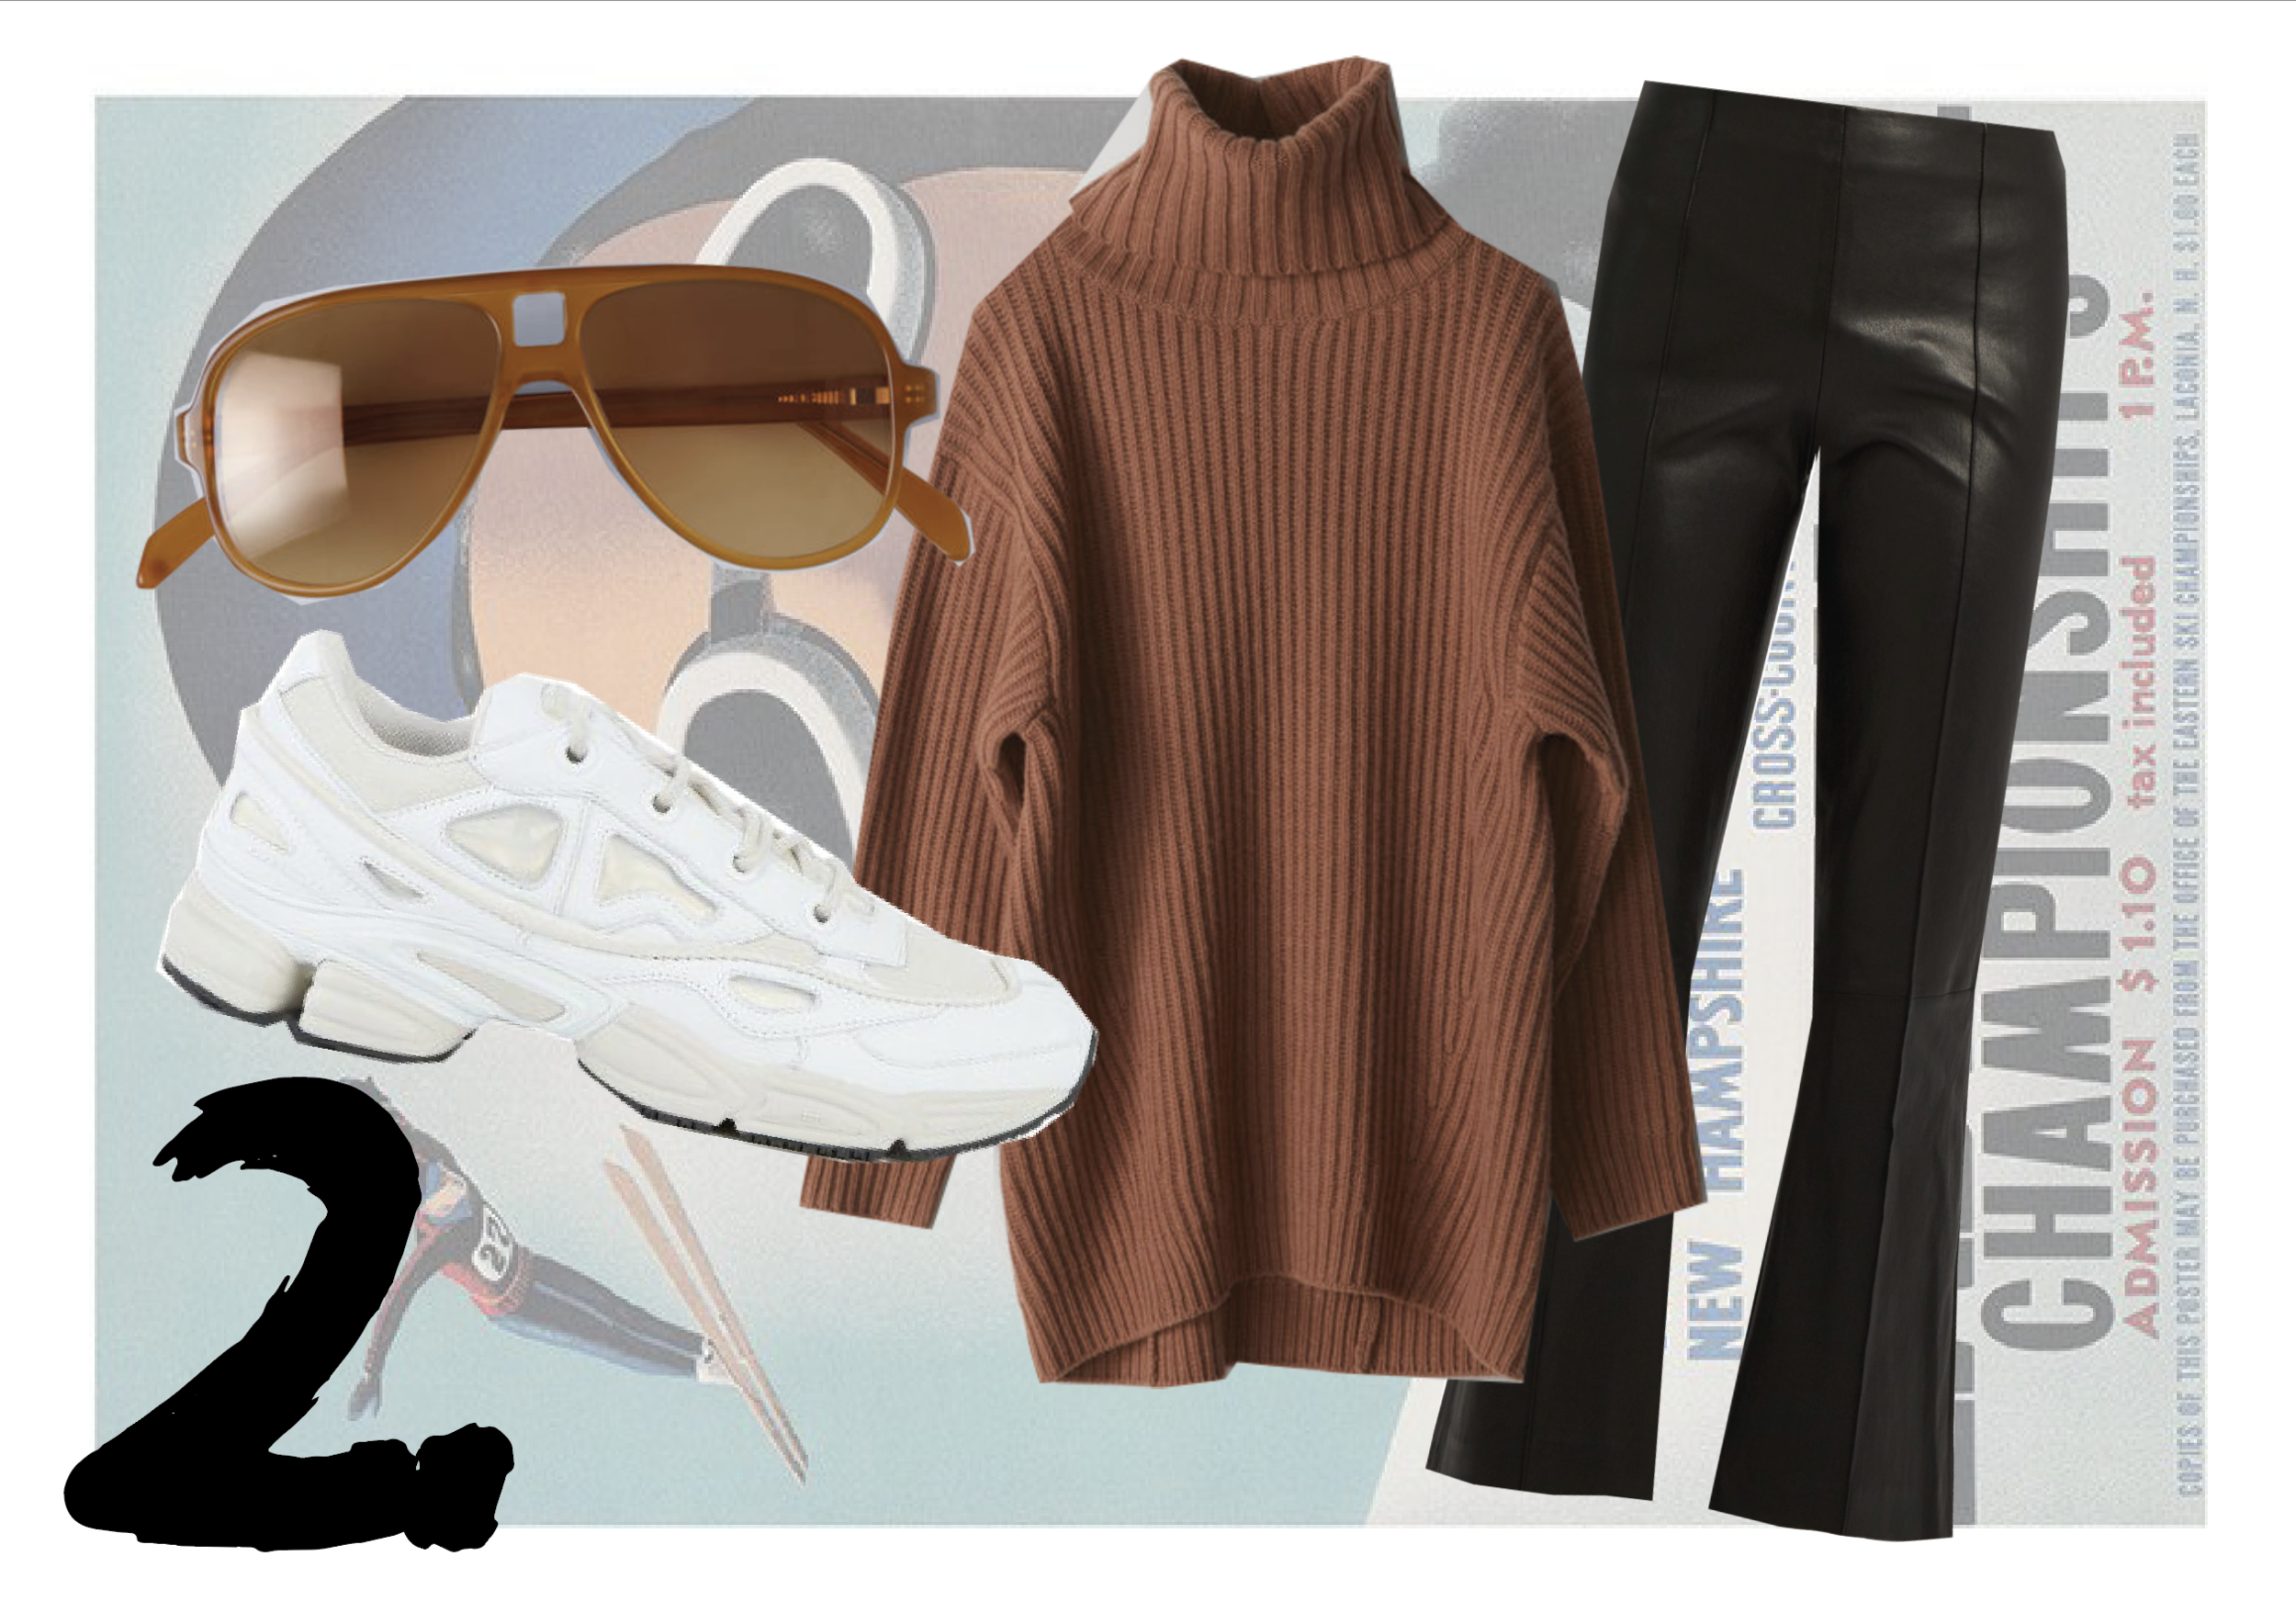 SNEAKERS:  Ozweego by Raf Simmons  | SUNGLASSES:  Acne  | JUMPER: Acne  | TROUSERS:  The Row